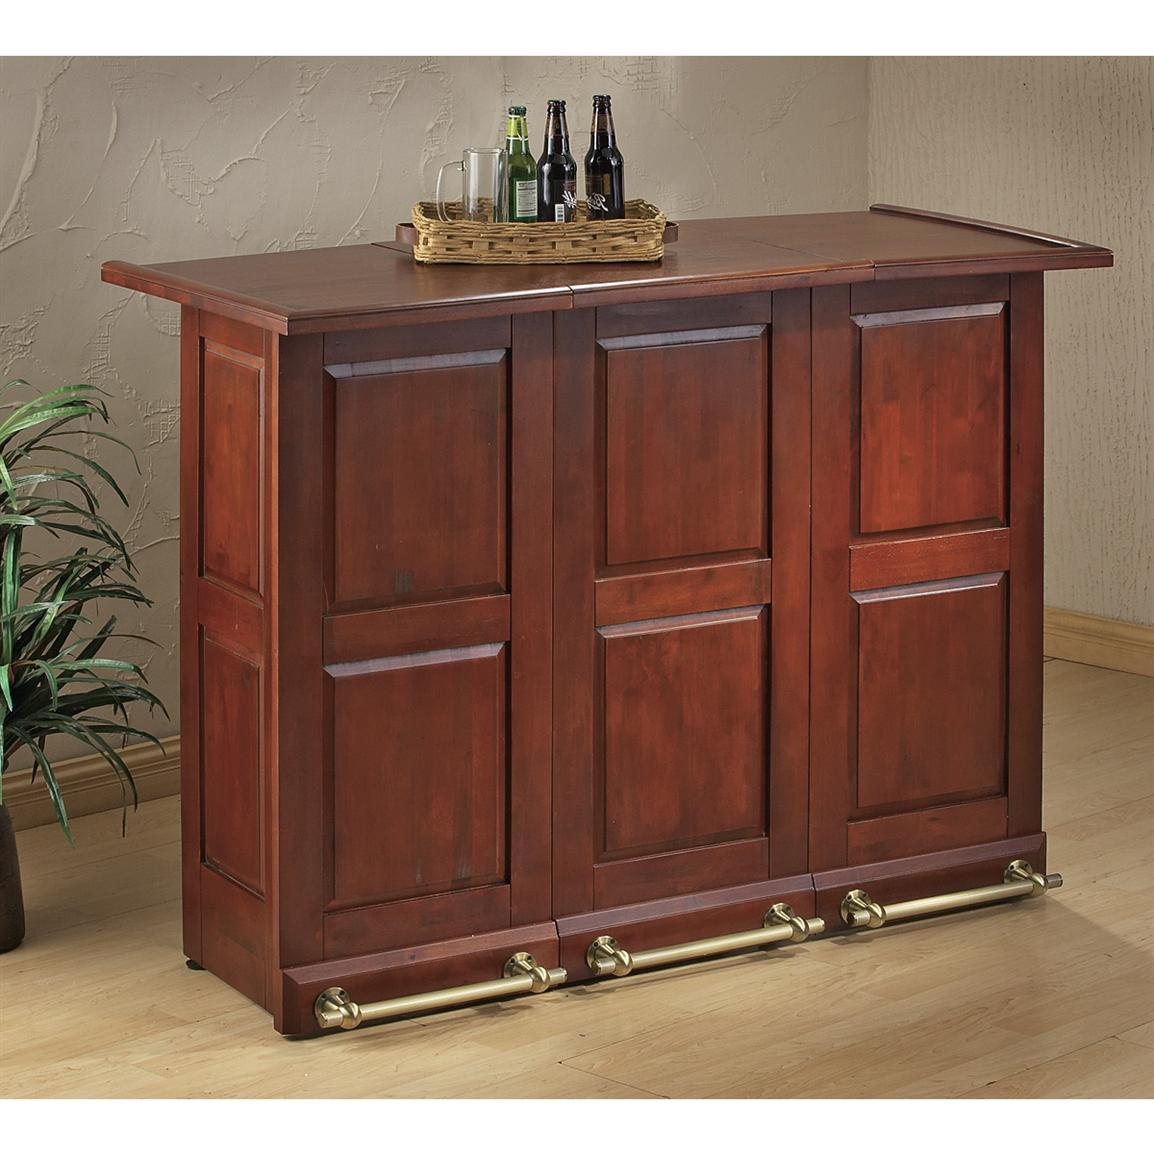 Swing Open Portable Bar 101882 Kitchen Amp Dining At